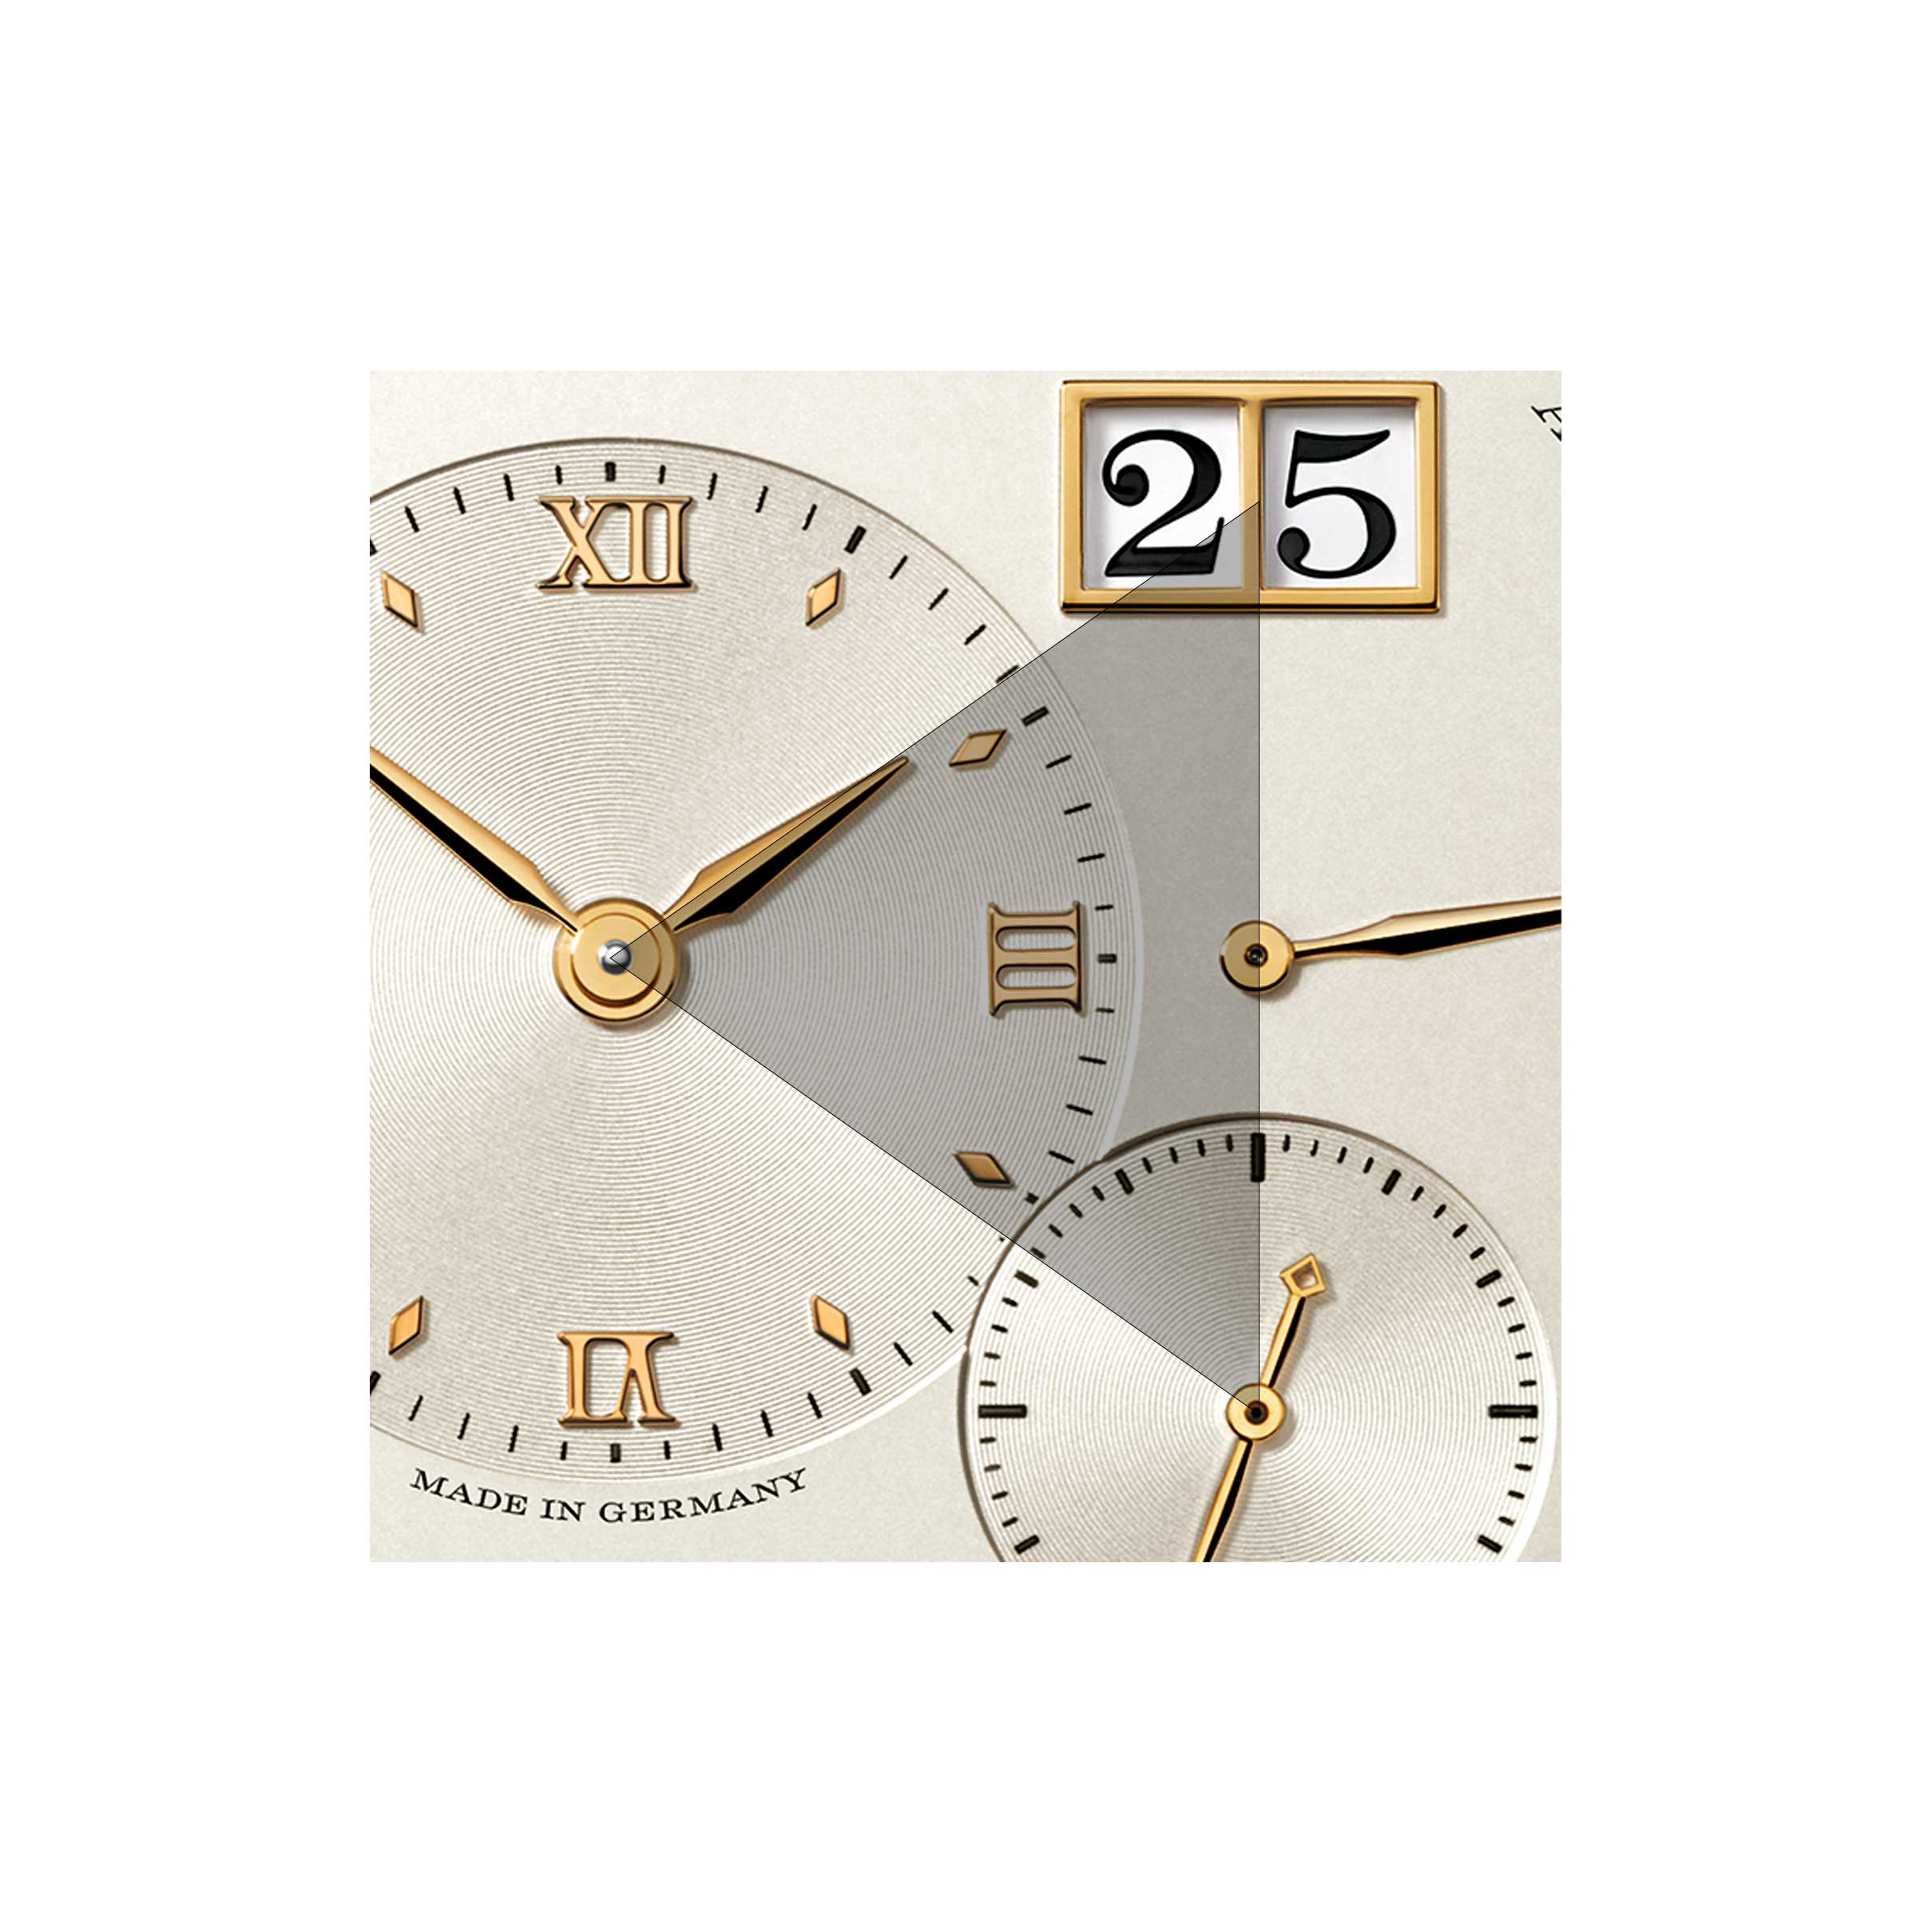 Sense and sensibility, on the seemingly chaotic dial of the Lange 1